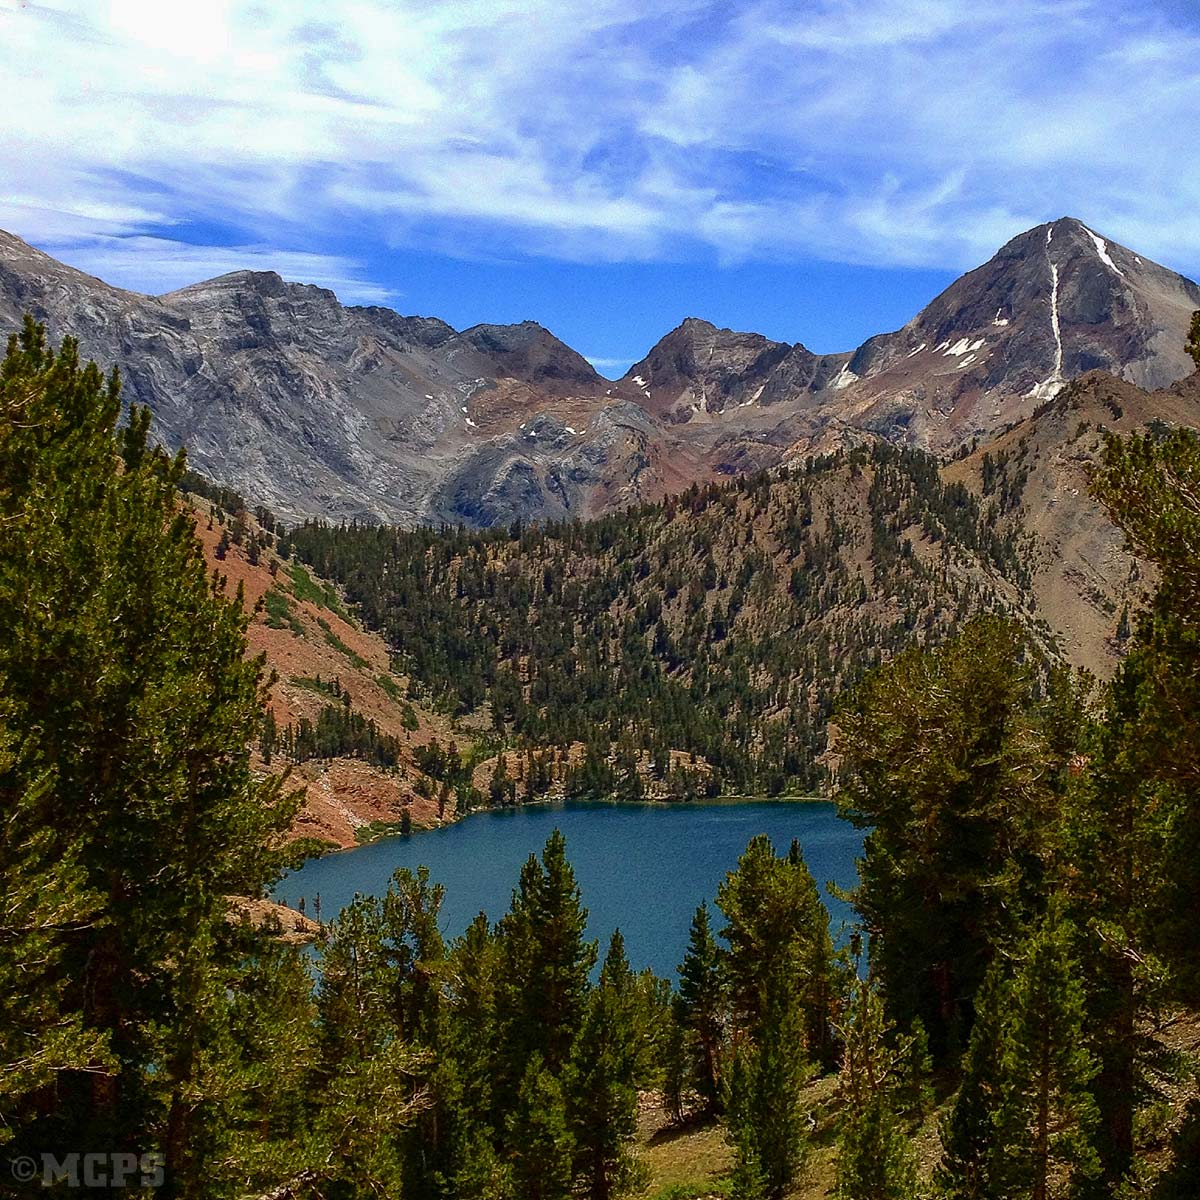 Mammoth pack trips in the High Sierra backcountry: The easiest access to Genevieve Lake in Convict Basin is by pack mules